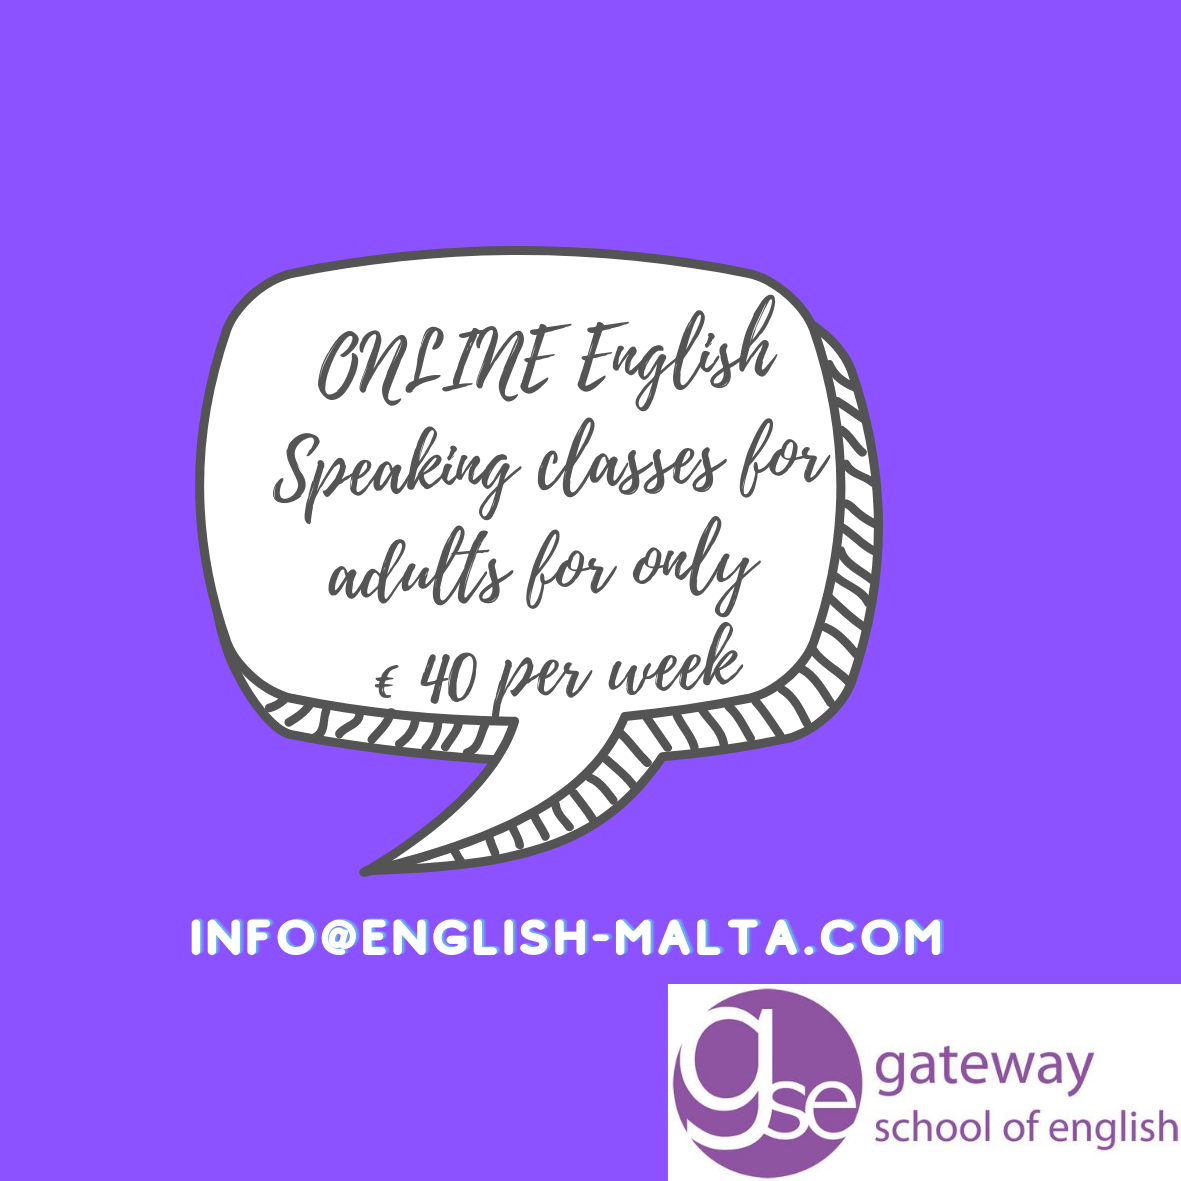 Online English Speaking courses Gateway School of English GSE